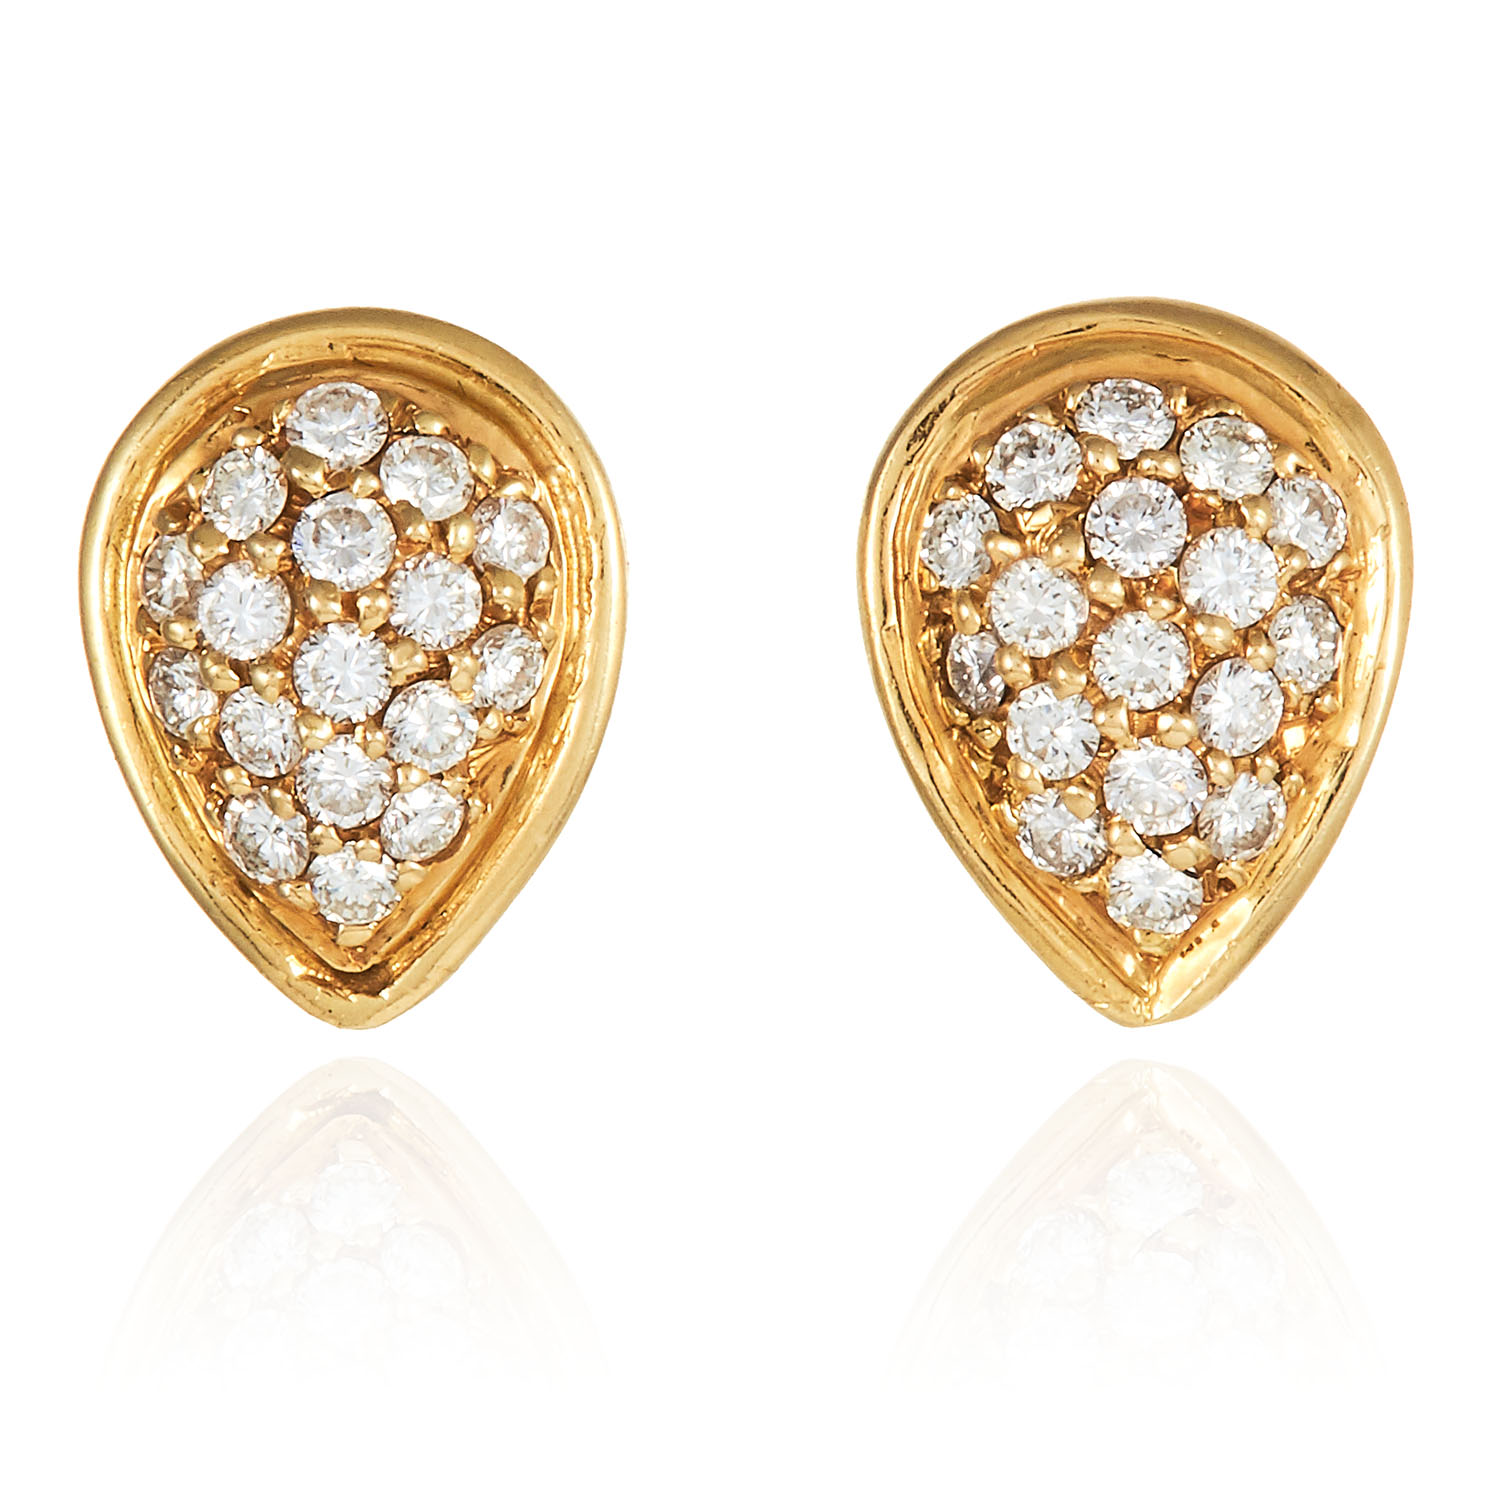 A PAIR OF DIAMOND STUD EARRINGS in high carat yellow gold, designed as pear drop shape jewelled with